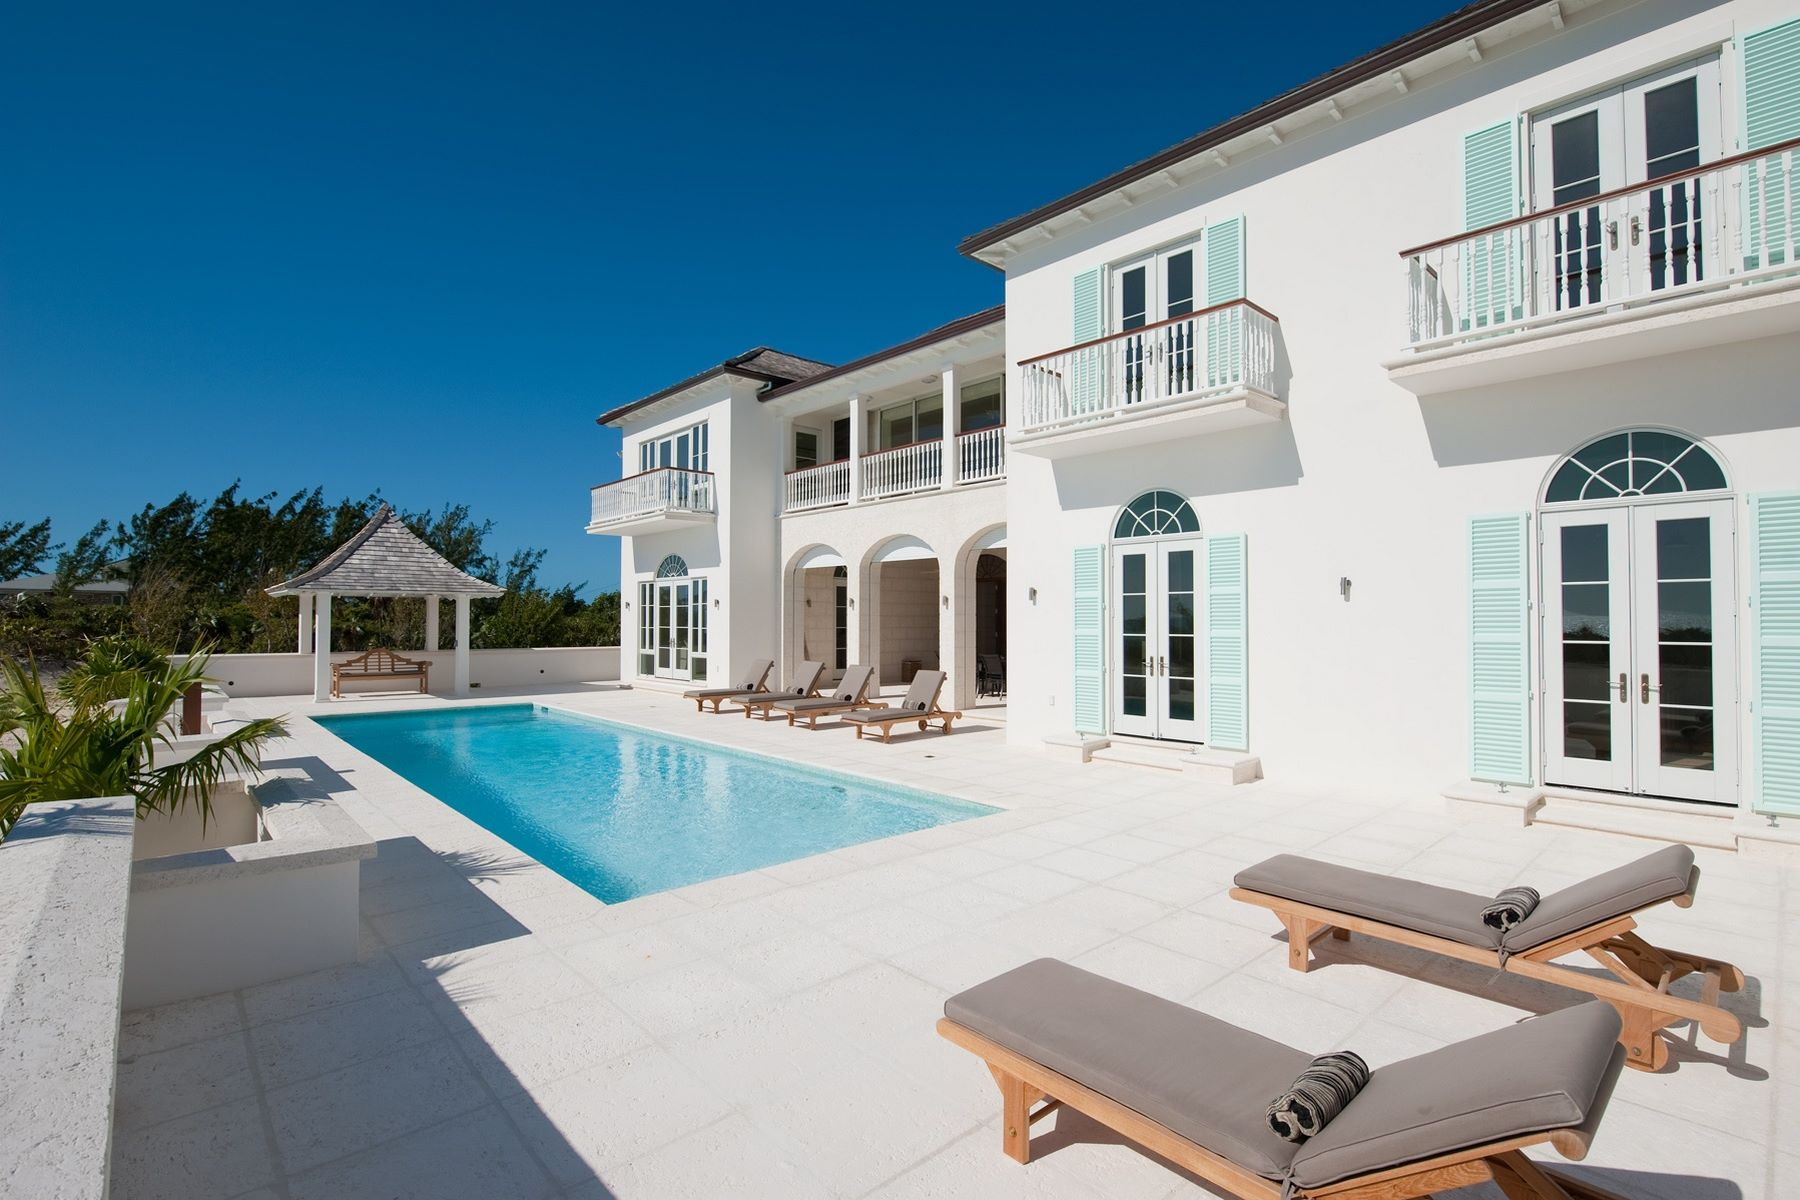 Additional photo for property listing at Long Bay House Long Bay House, Long Bay Beach Drive Long Bay, Providenciales TKCA 1ZZ Turks And Caicos Islands